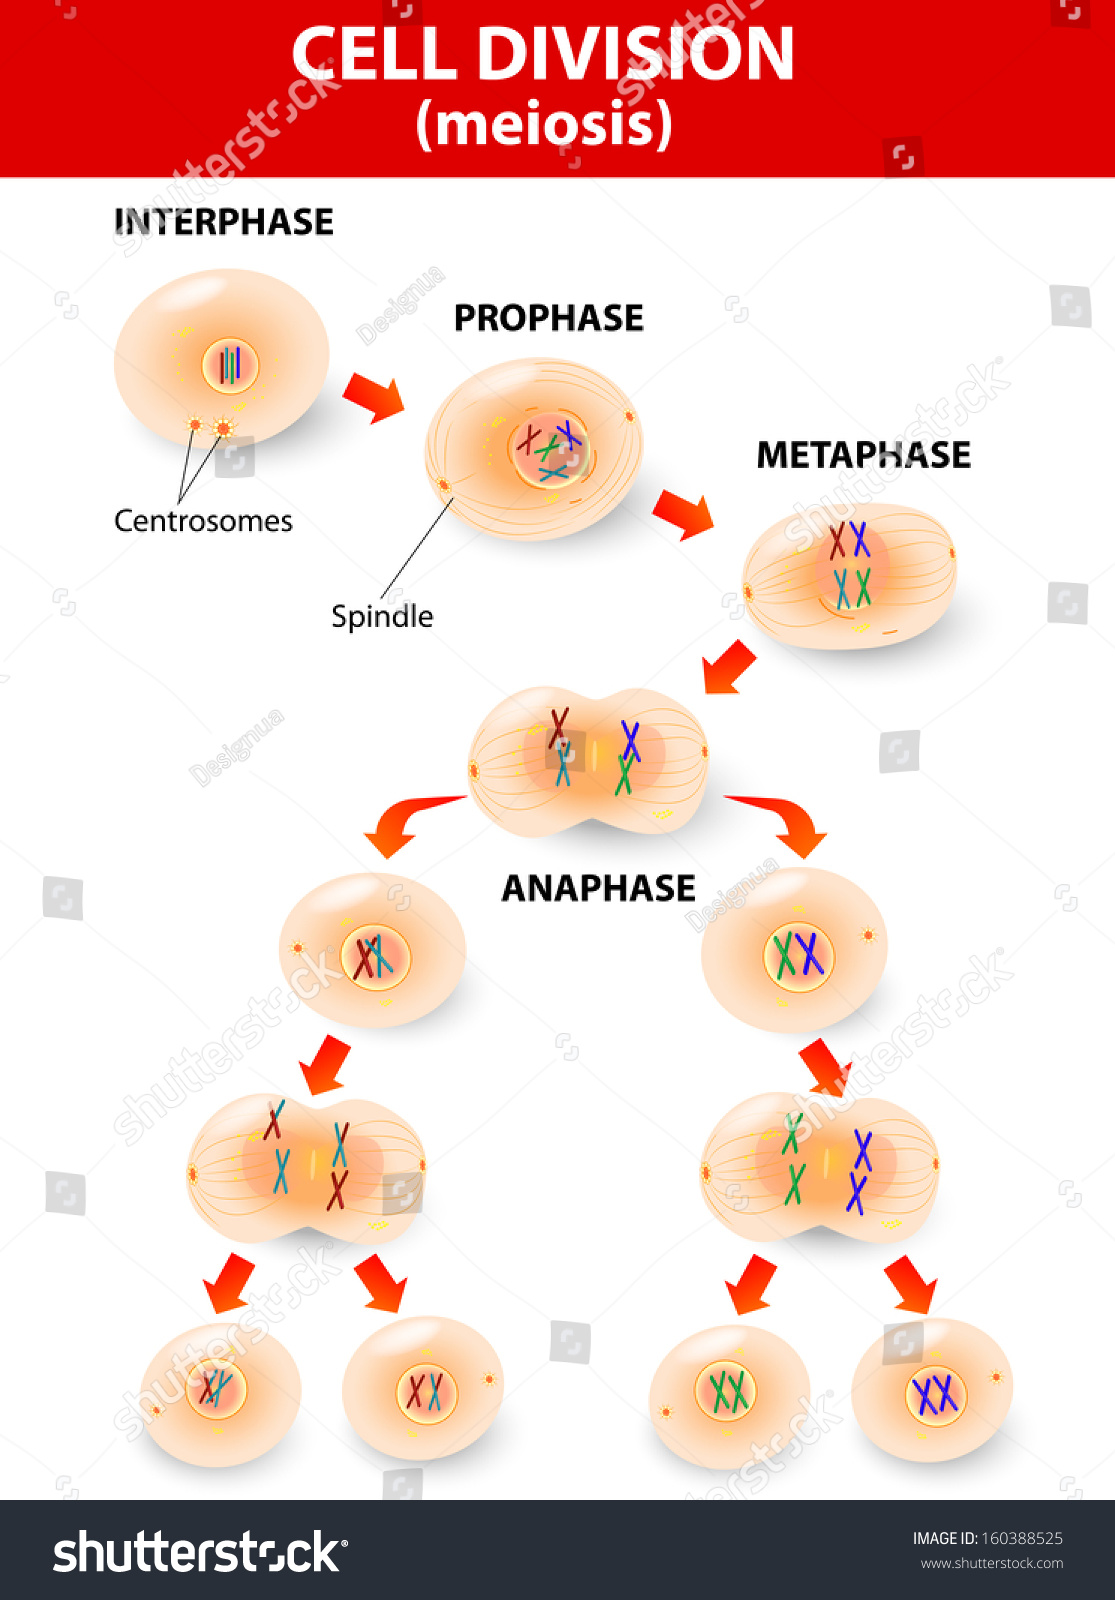 Meiosis cell division vector diagram stock vector 160388525 cell division vector diagram pooptronica Images